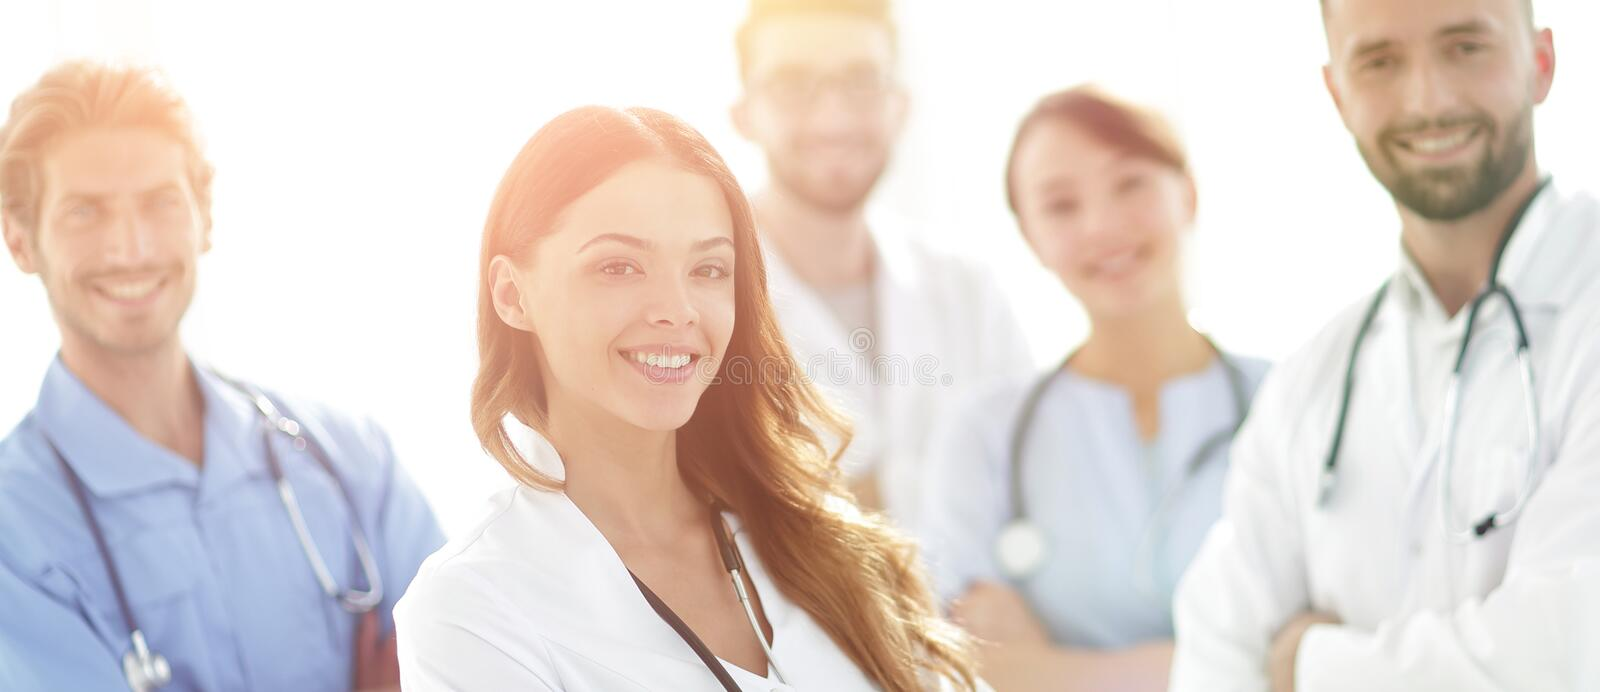 Attractive female doctor with medical stethoscope in front of medical group royalty free stock photo